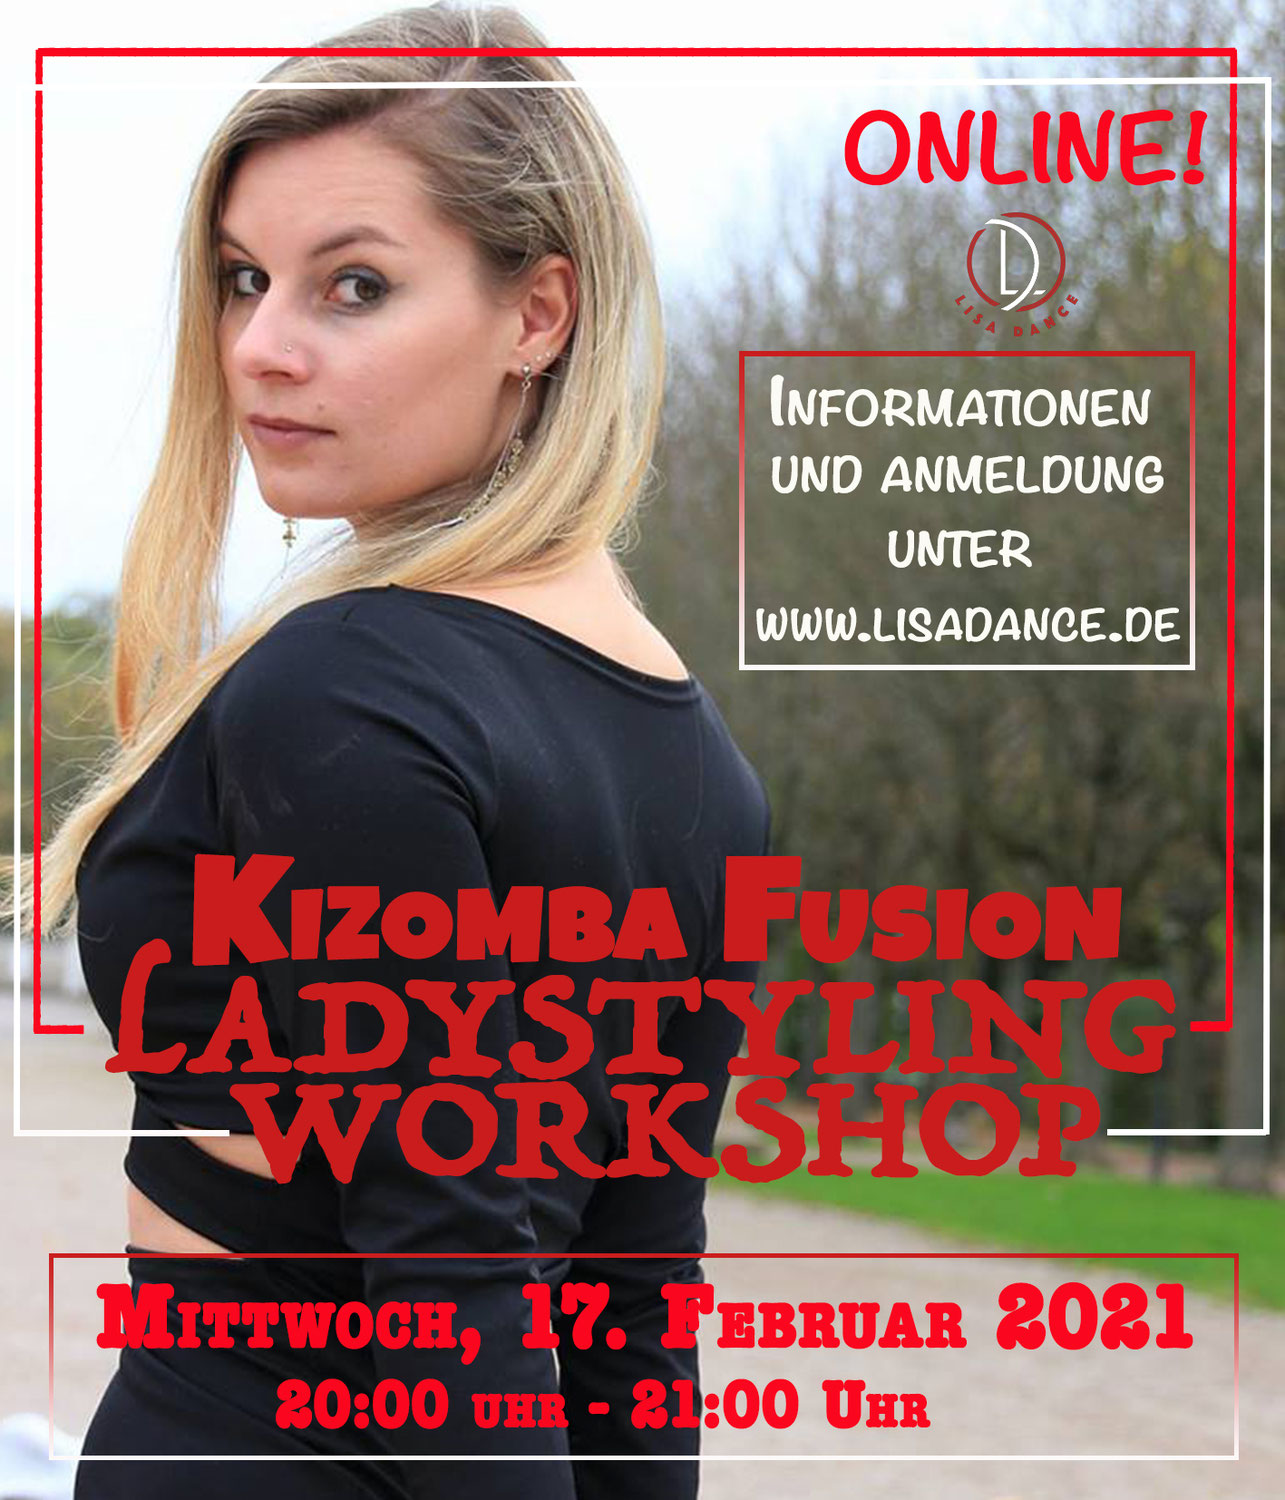 ONLINE - Kizomba Fusion Ladystyling Workshop